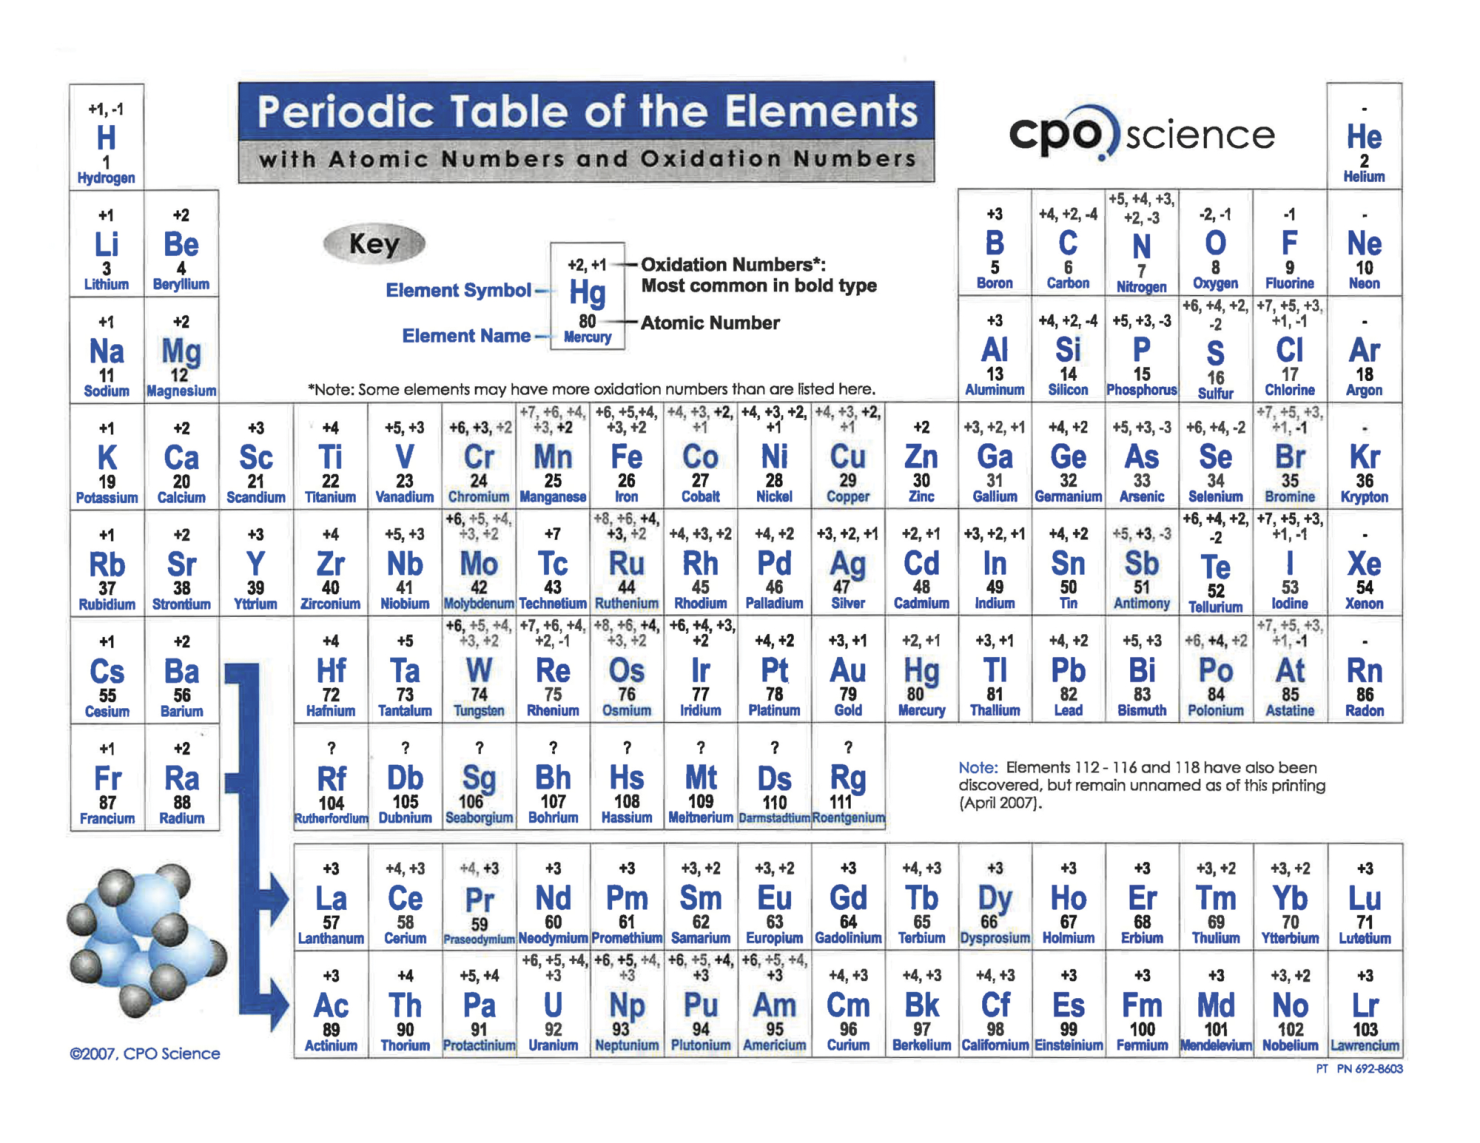 cpo science advanced periodic table 85 x 11 laminated - 8 5 X 11 Periodic Table Of Elements